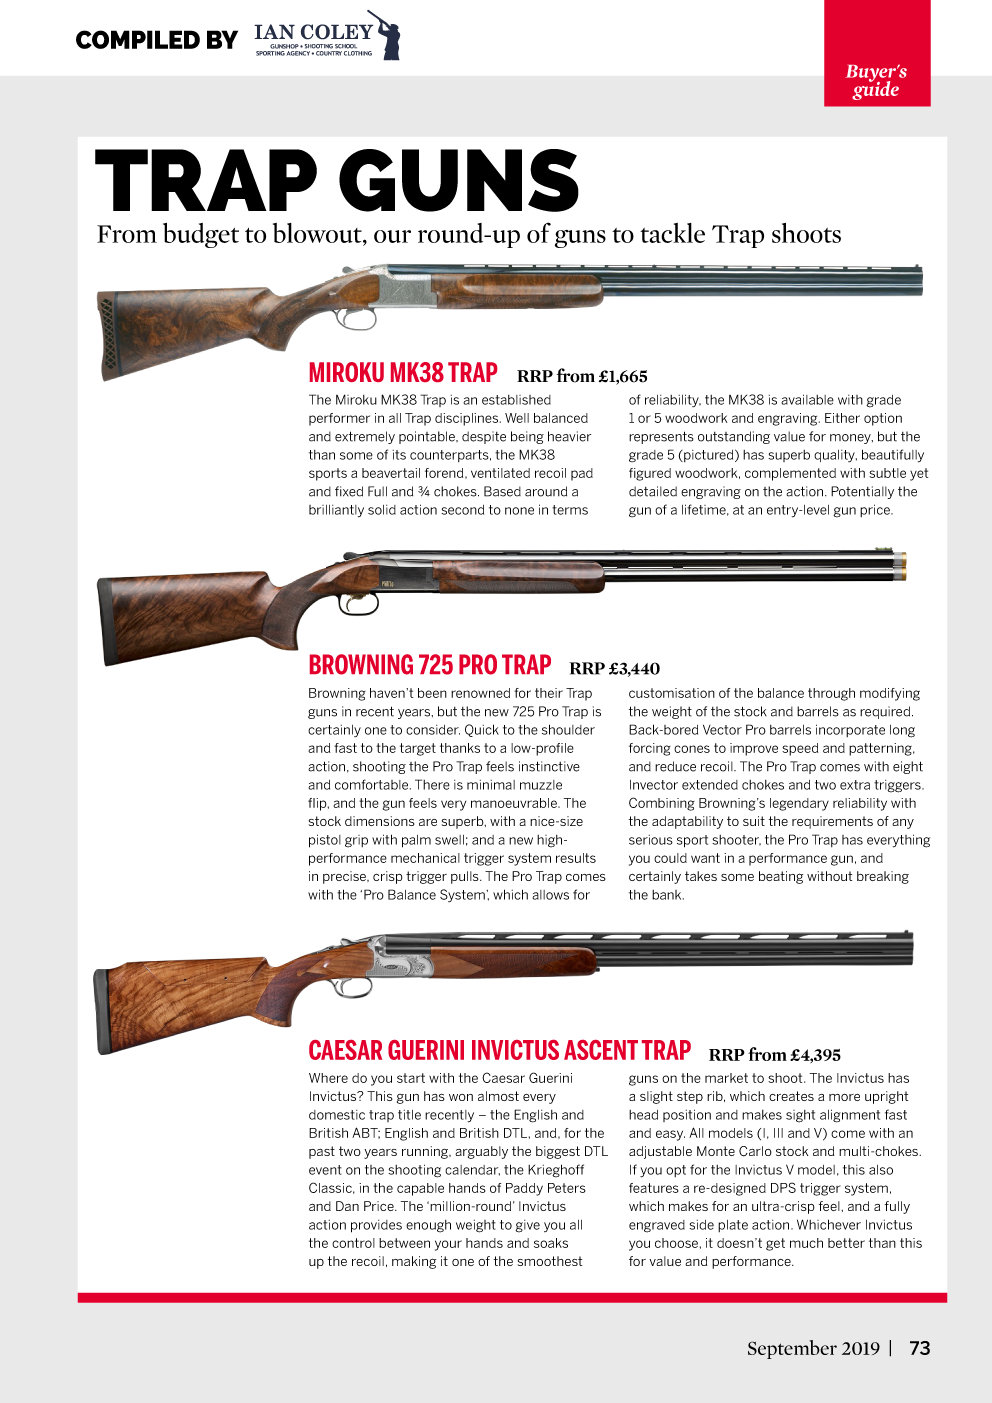 Clay Shooting - Buyer's Guide - Trap Guns - September 2019